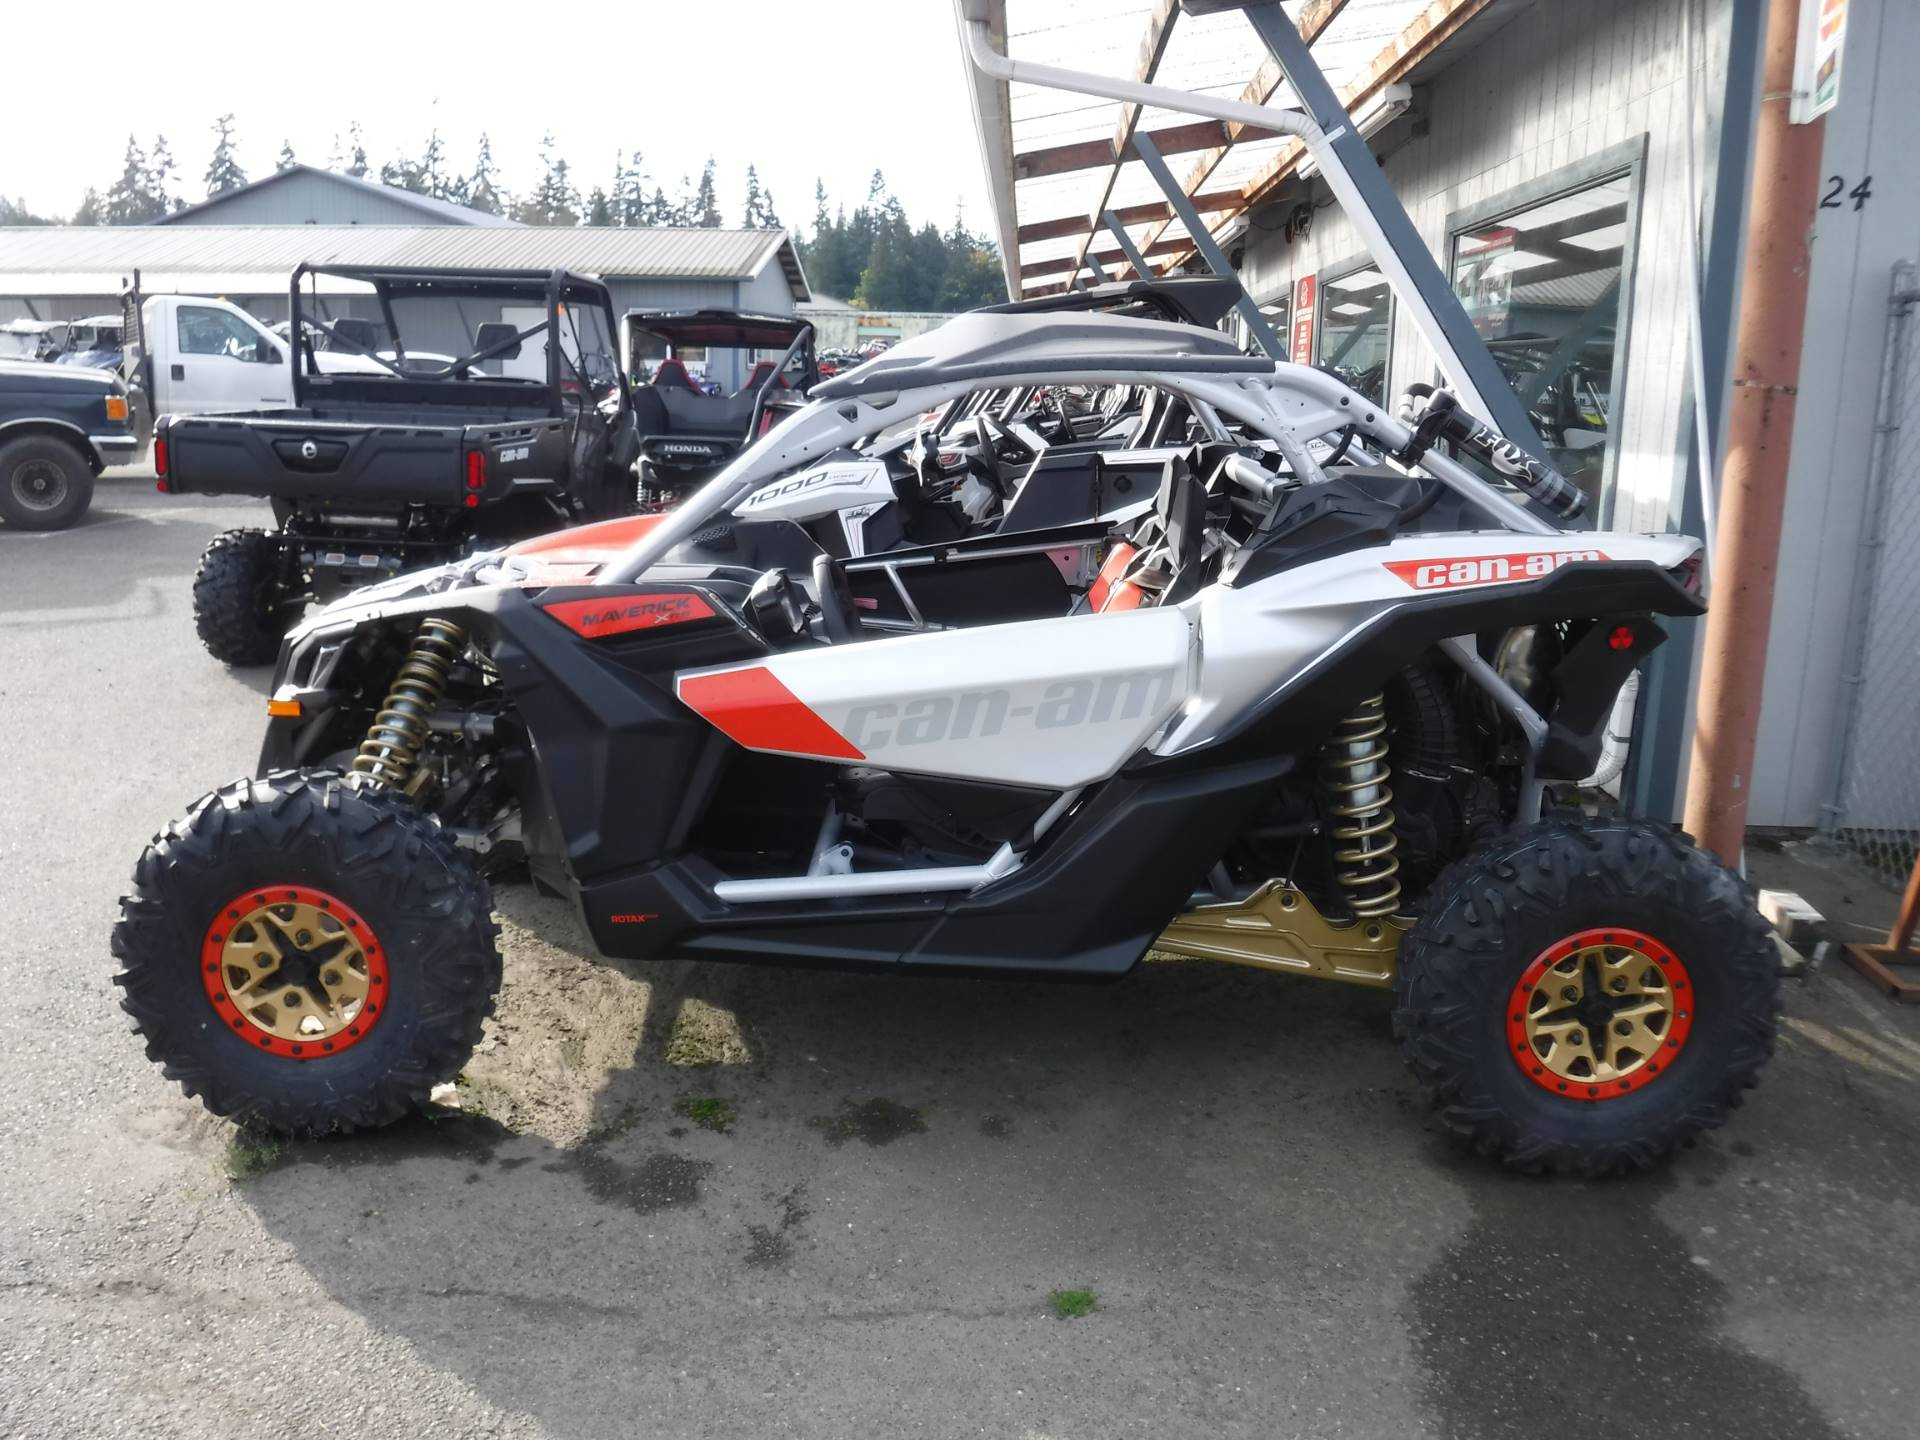 2019 Can-Am Maverick X3 X rs Turbo R in Port Angeles, Washington - Photo 2